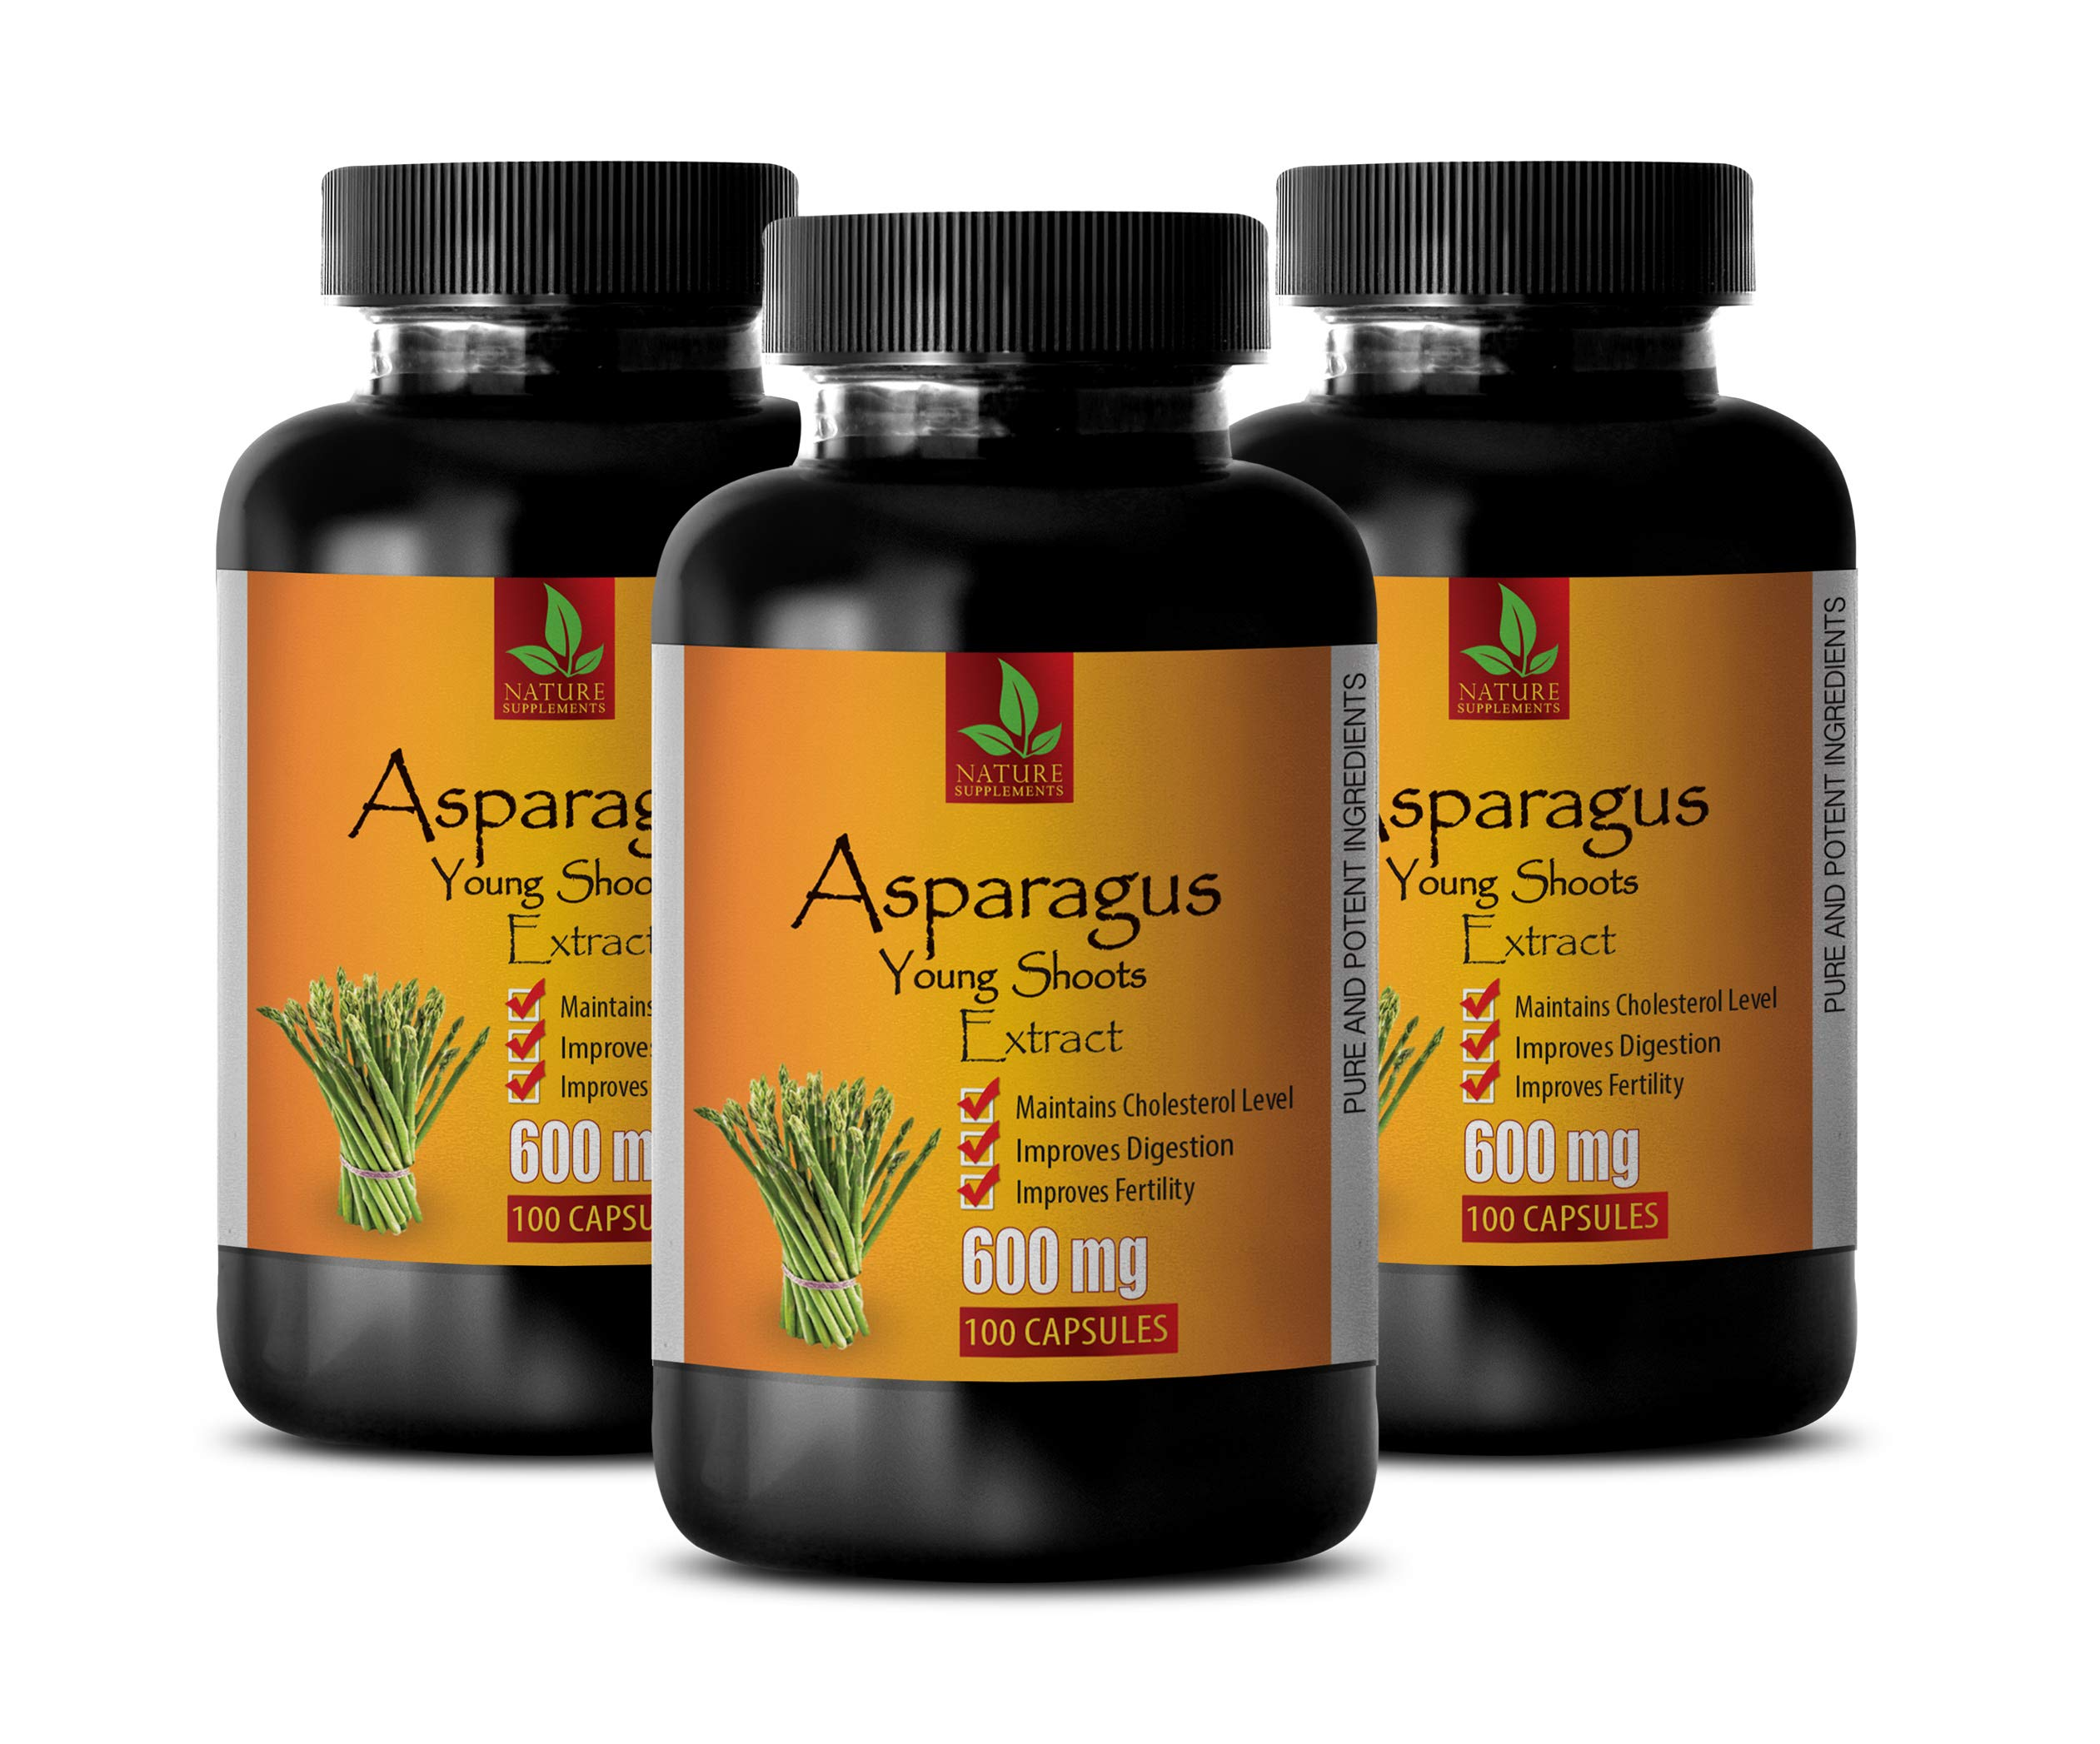 Brain Memory Supplements - Asparagus Young Shoots Extract 600 MG - Pure and Potent Ingredients - Digestion Vitamins - 3 Bottles 300 Capsules